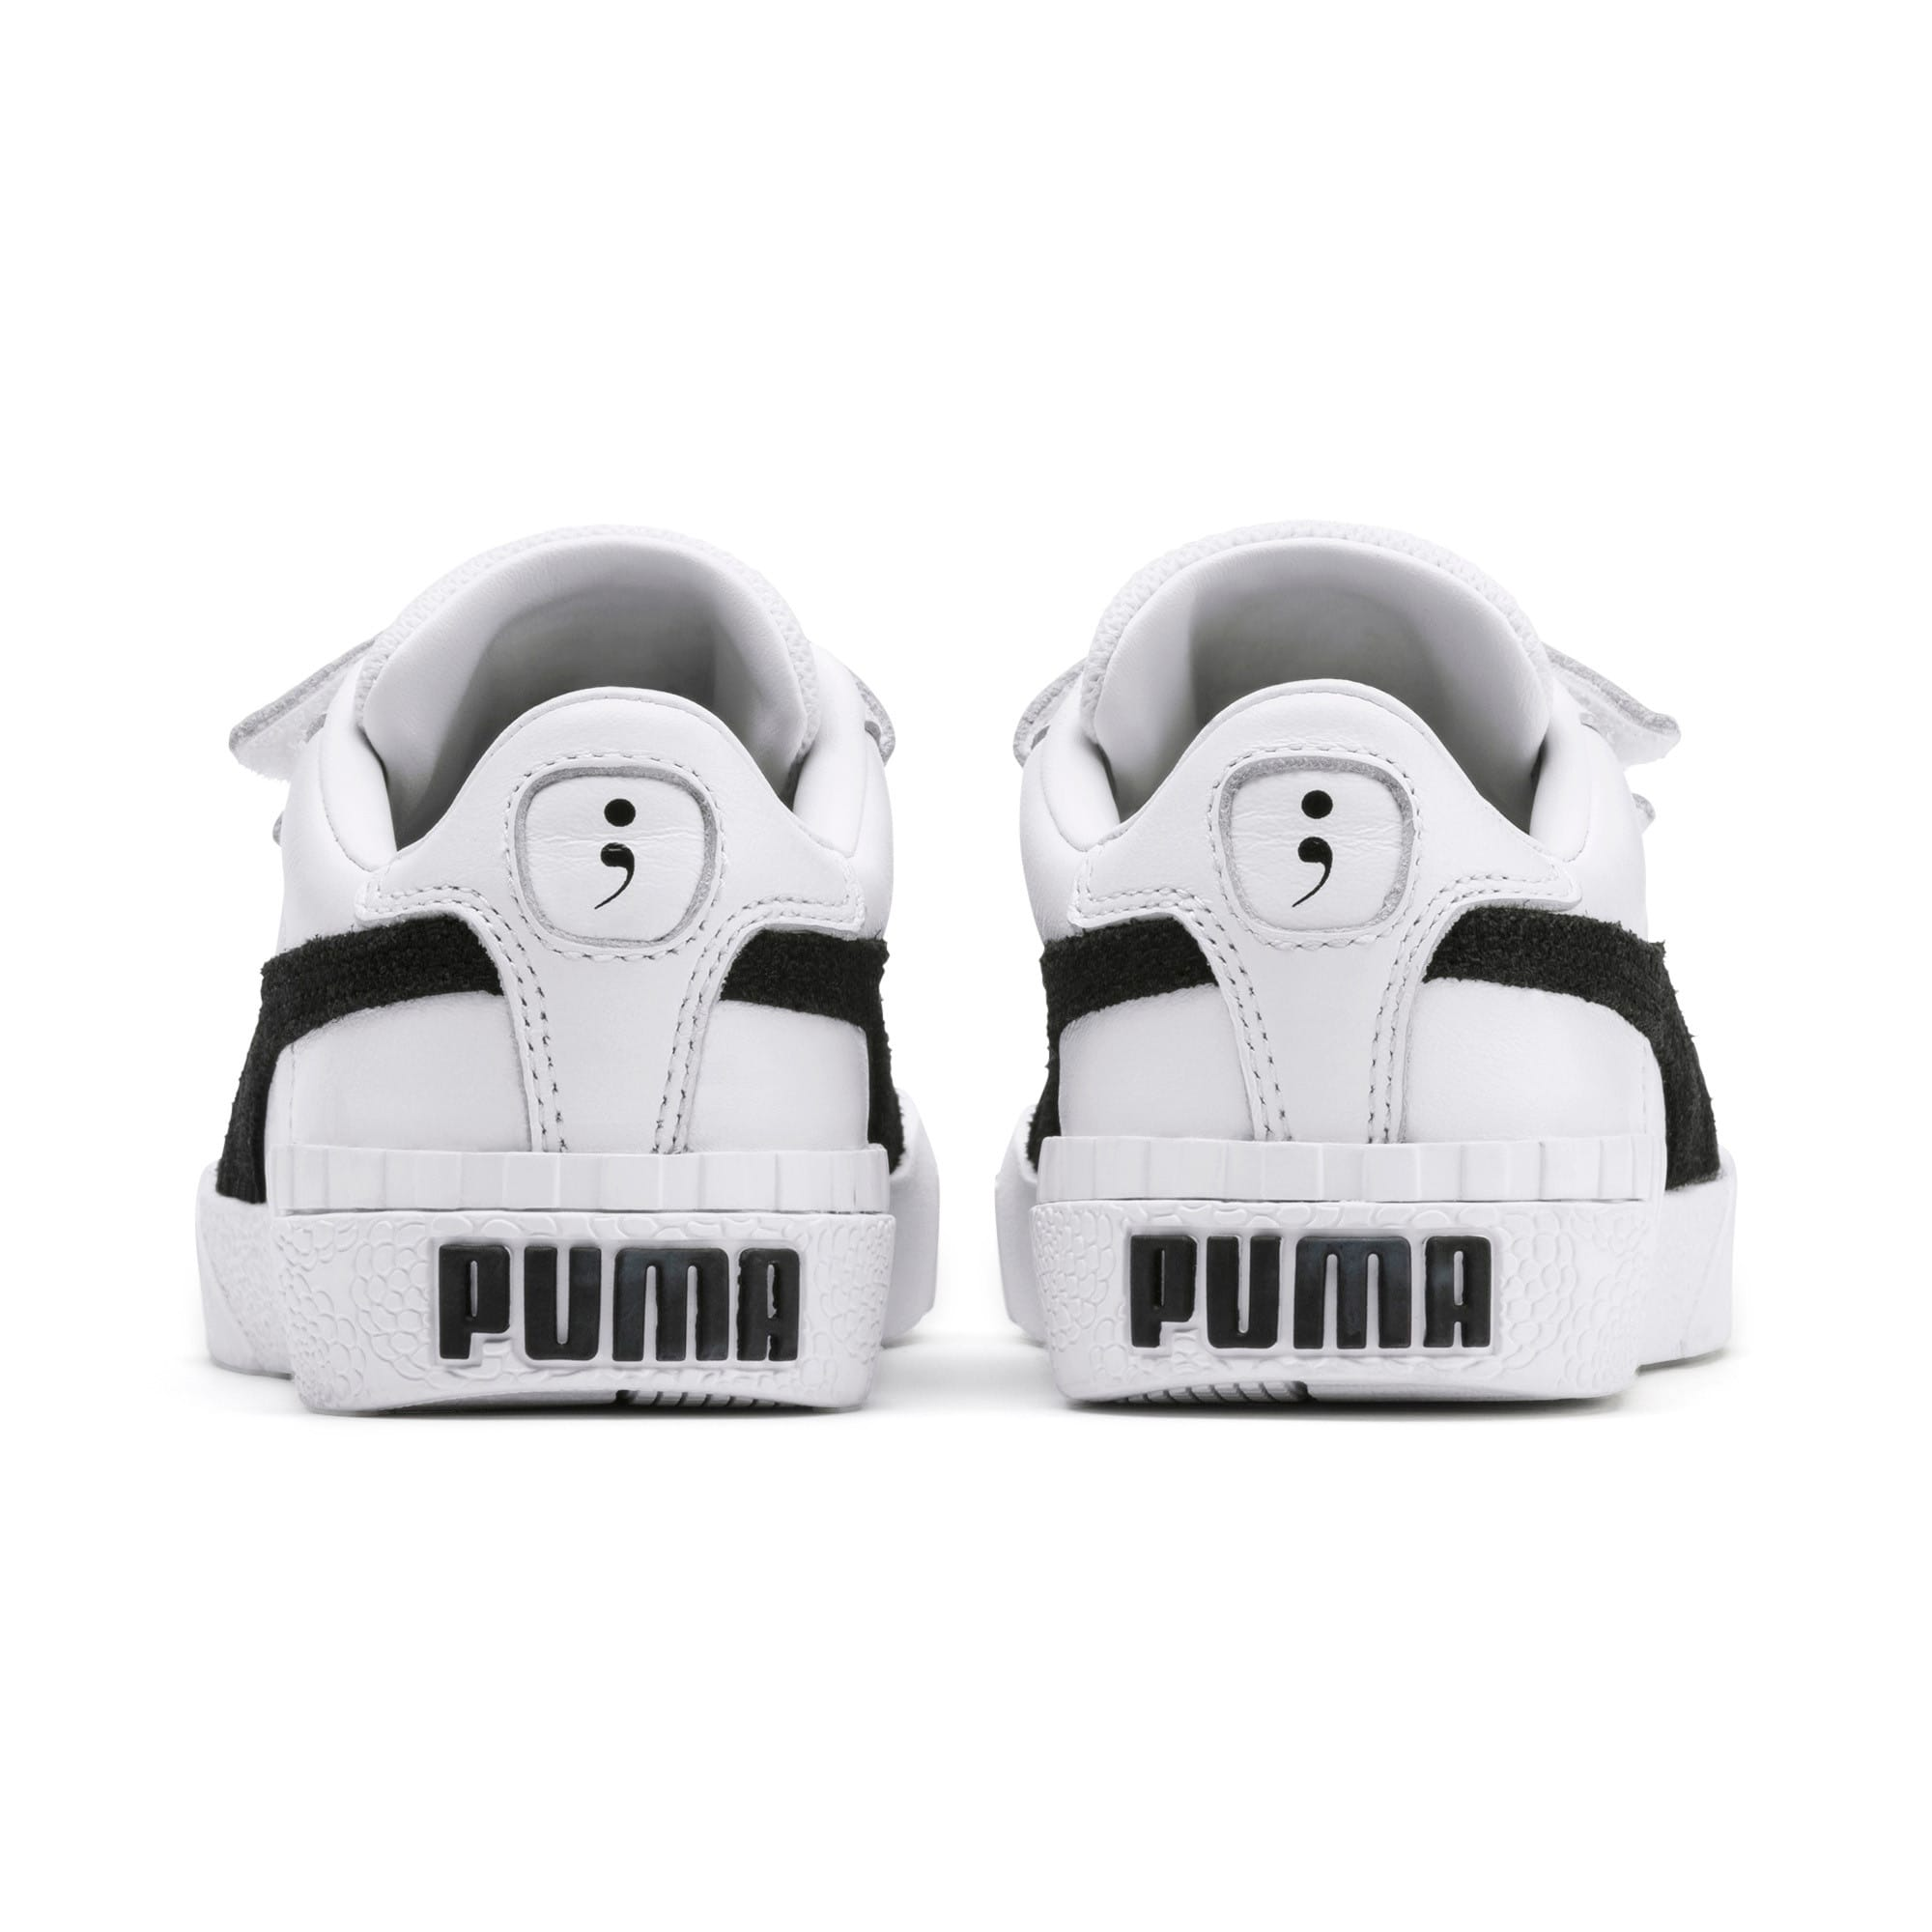 Thumbnail 3 of SG x Cali B+W Little Kids' Shoes, Puma White-Puma Black, medium